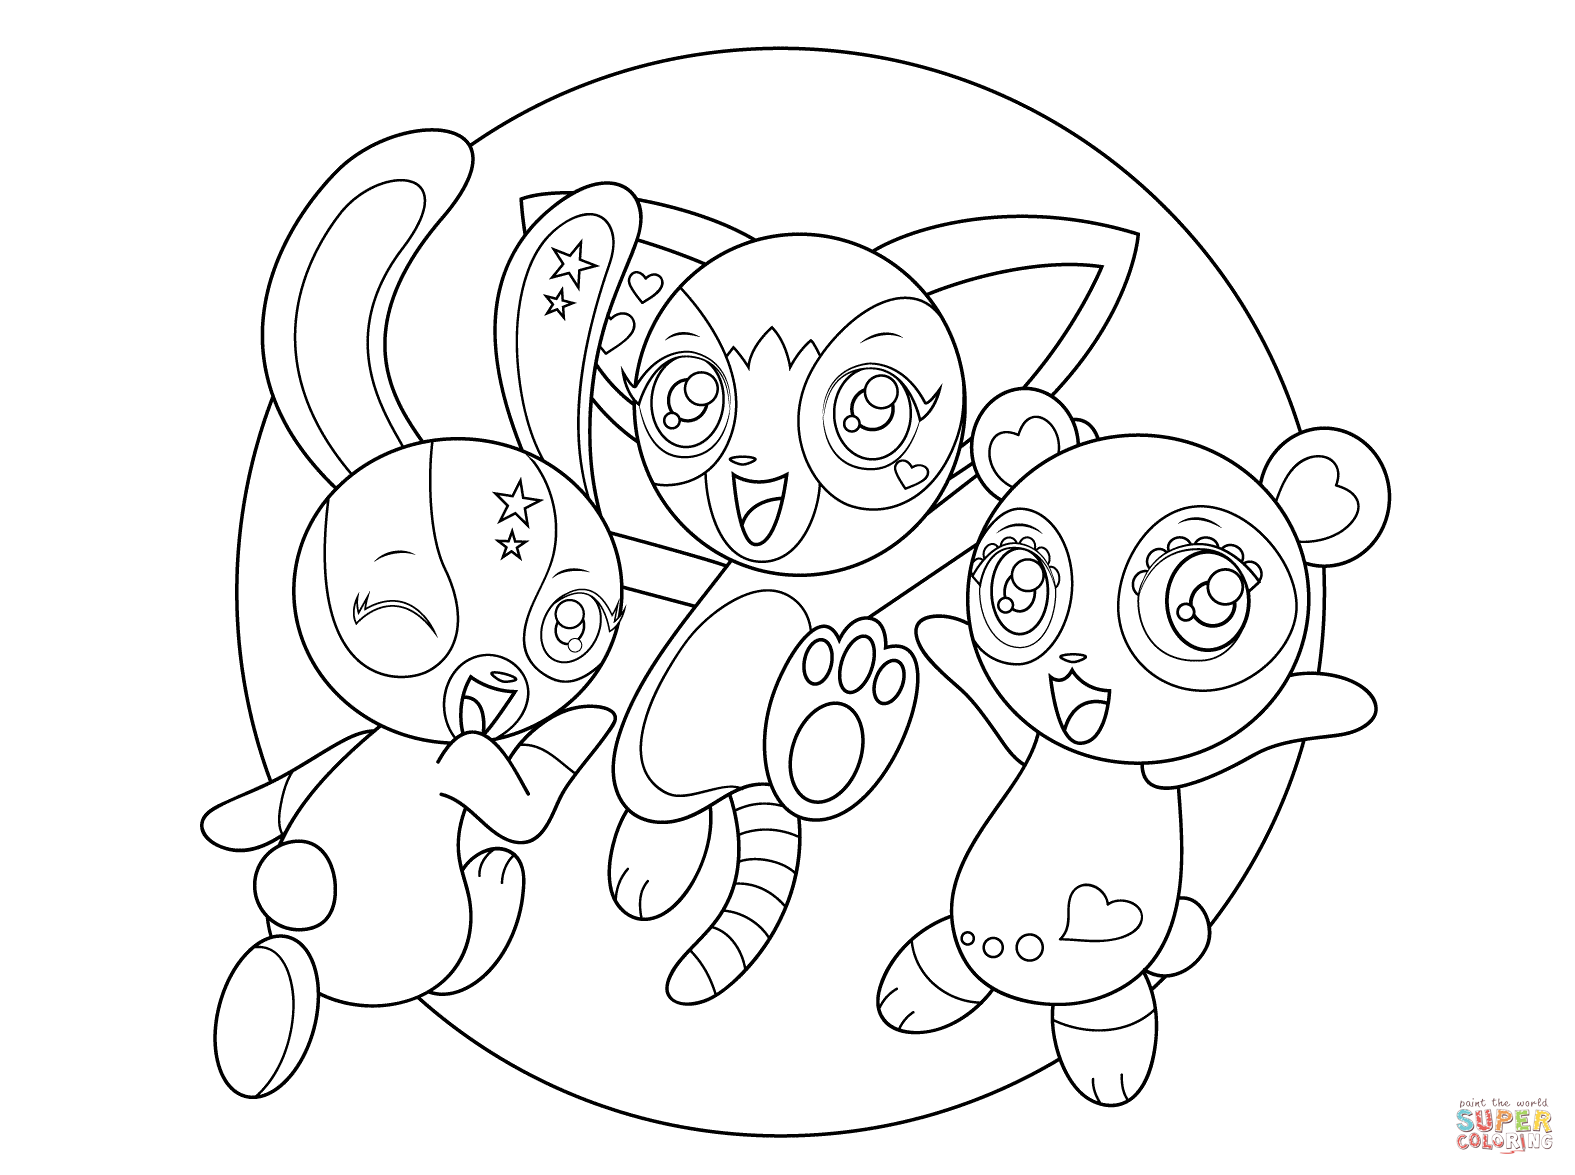 yoohoo and friends colouring pages yoohoo and friends coloring pages coloring home and yoohoo pages friends colouring